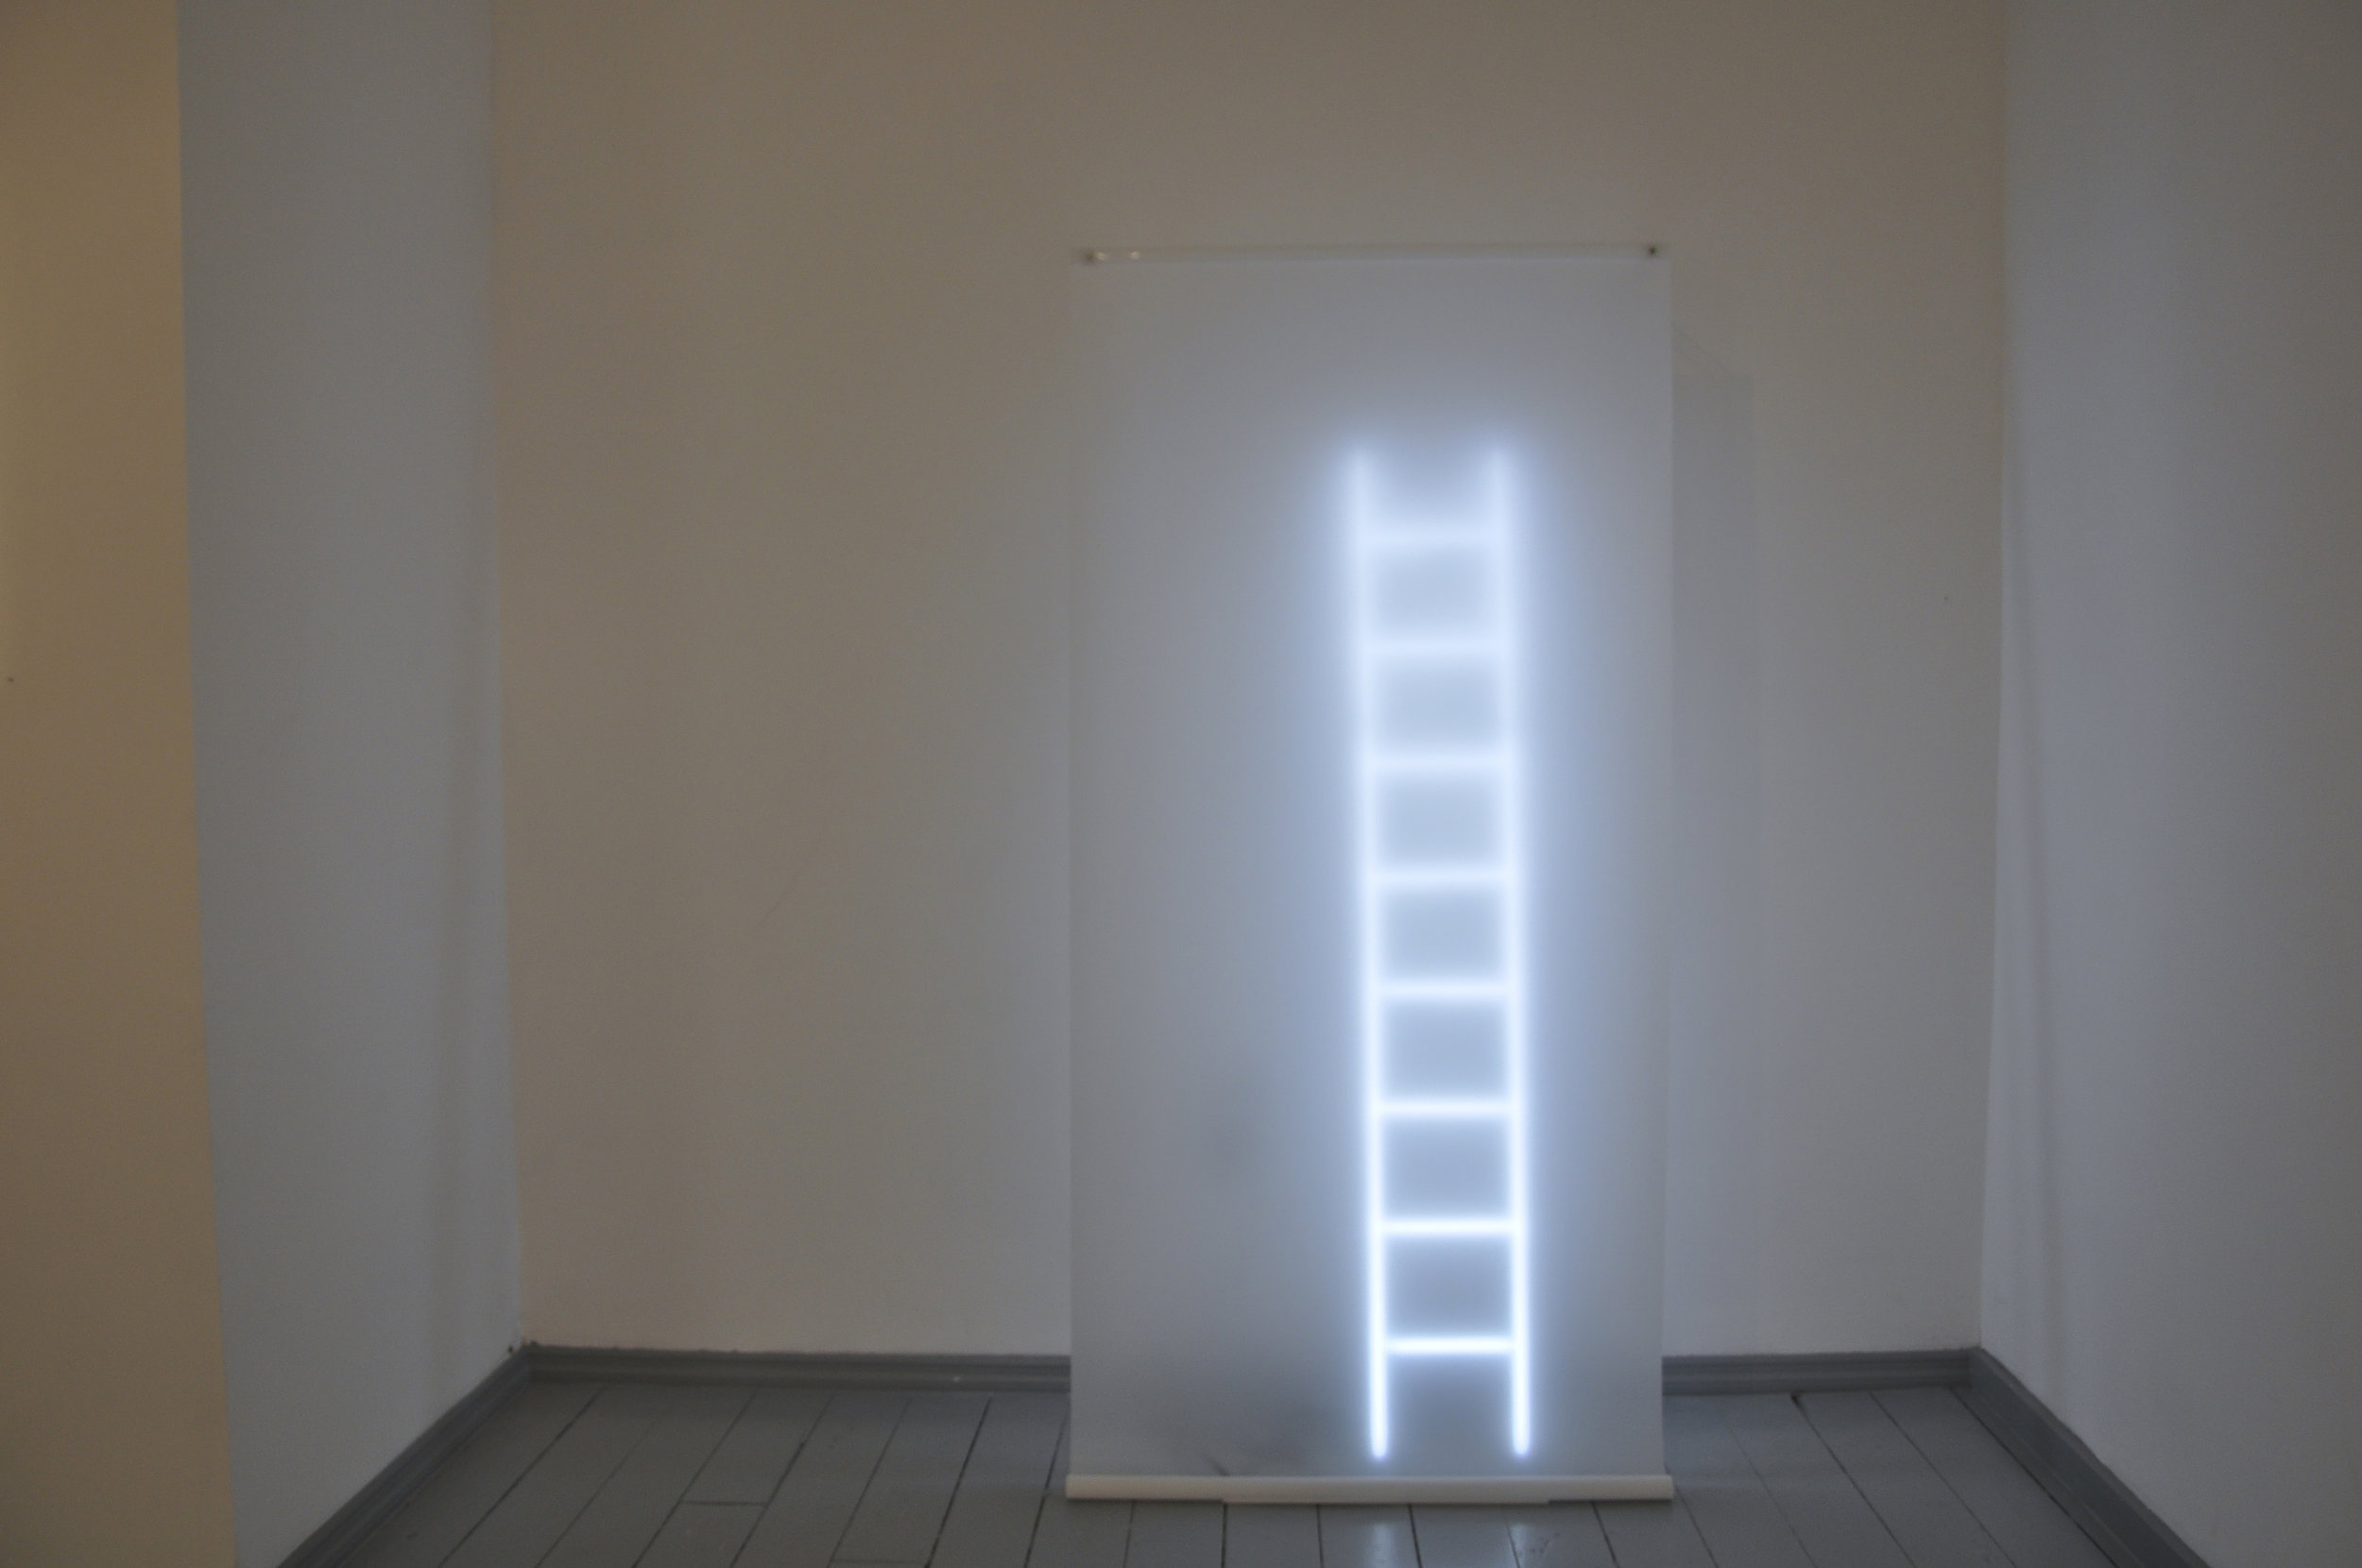 Ladder for Blurred Perspective